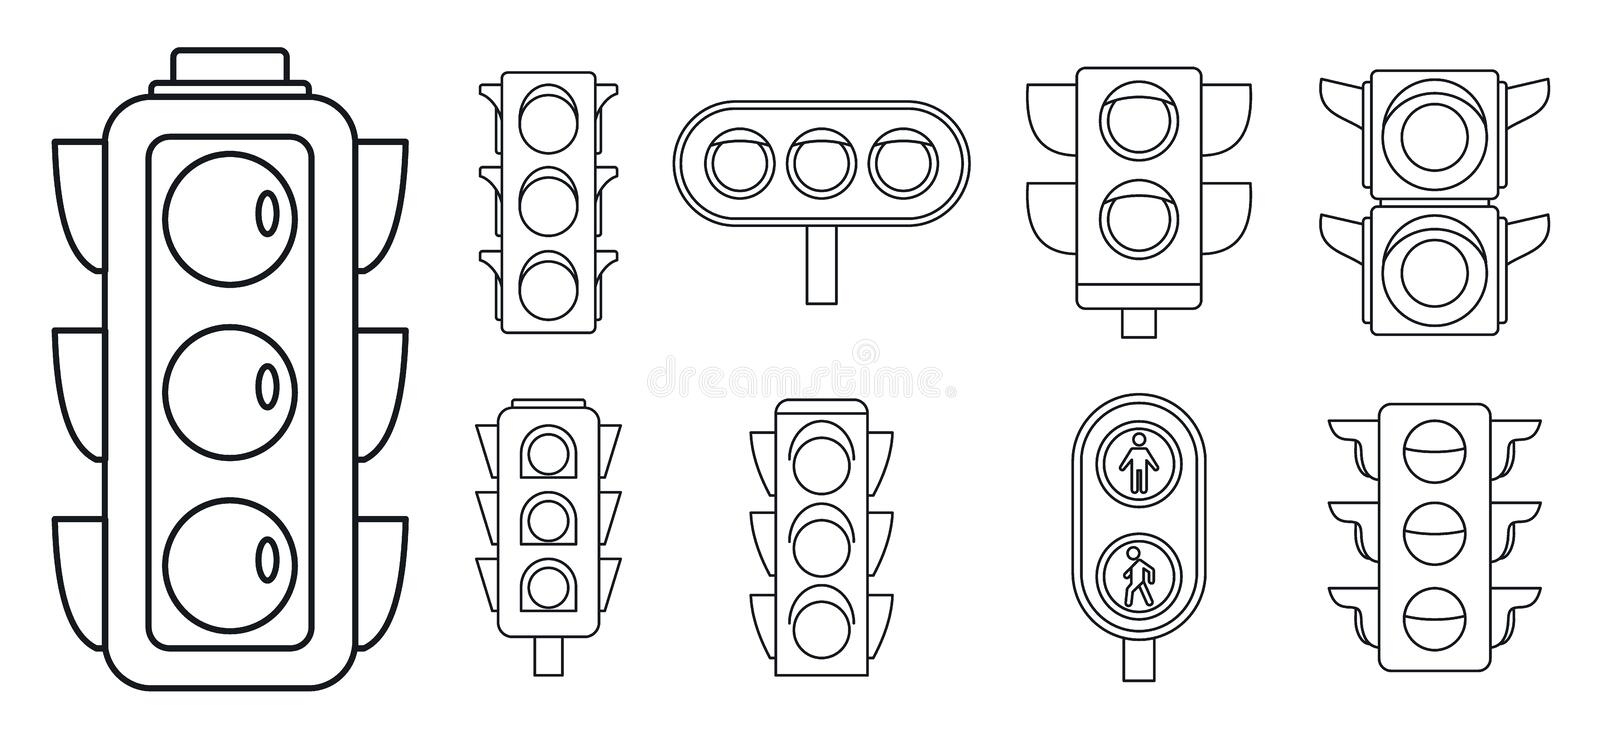 Road traffic lights icon set, outline style vector illustration